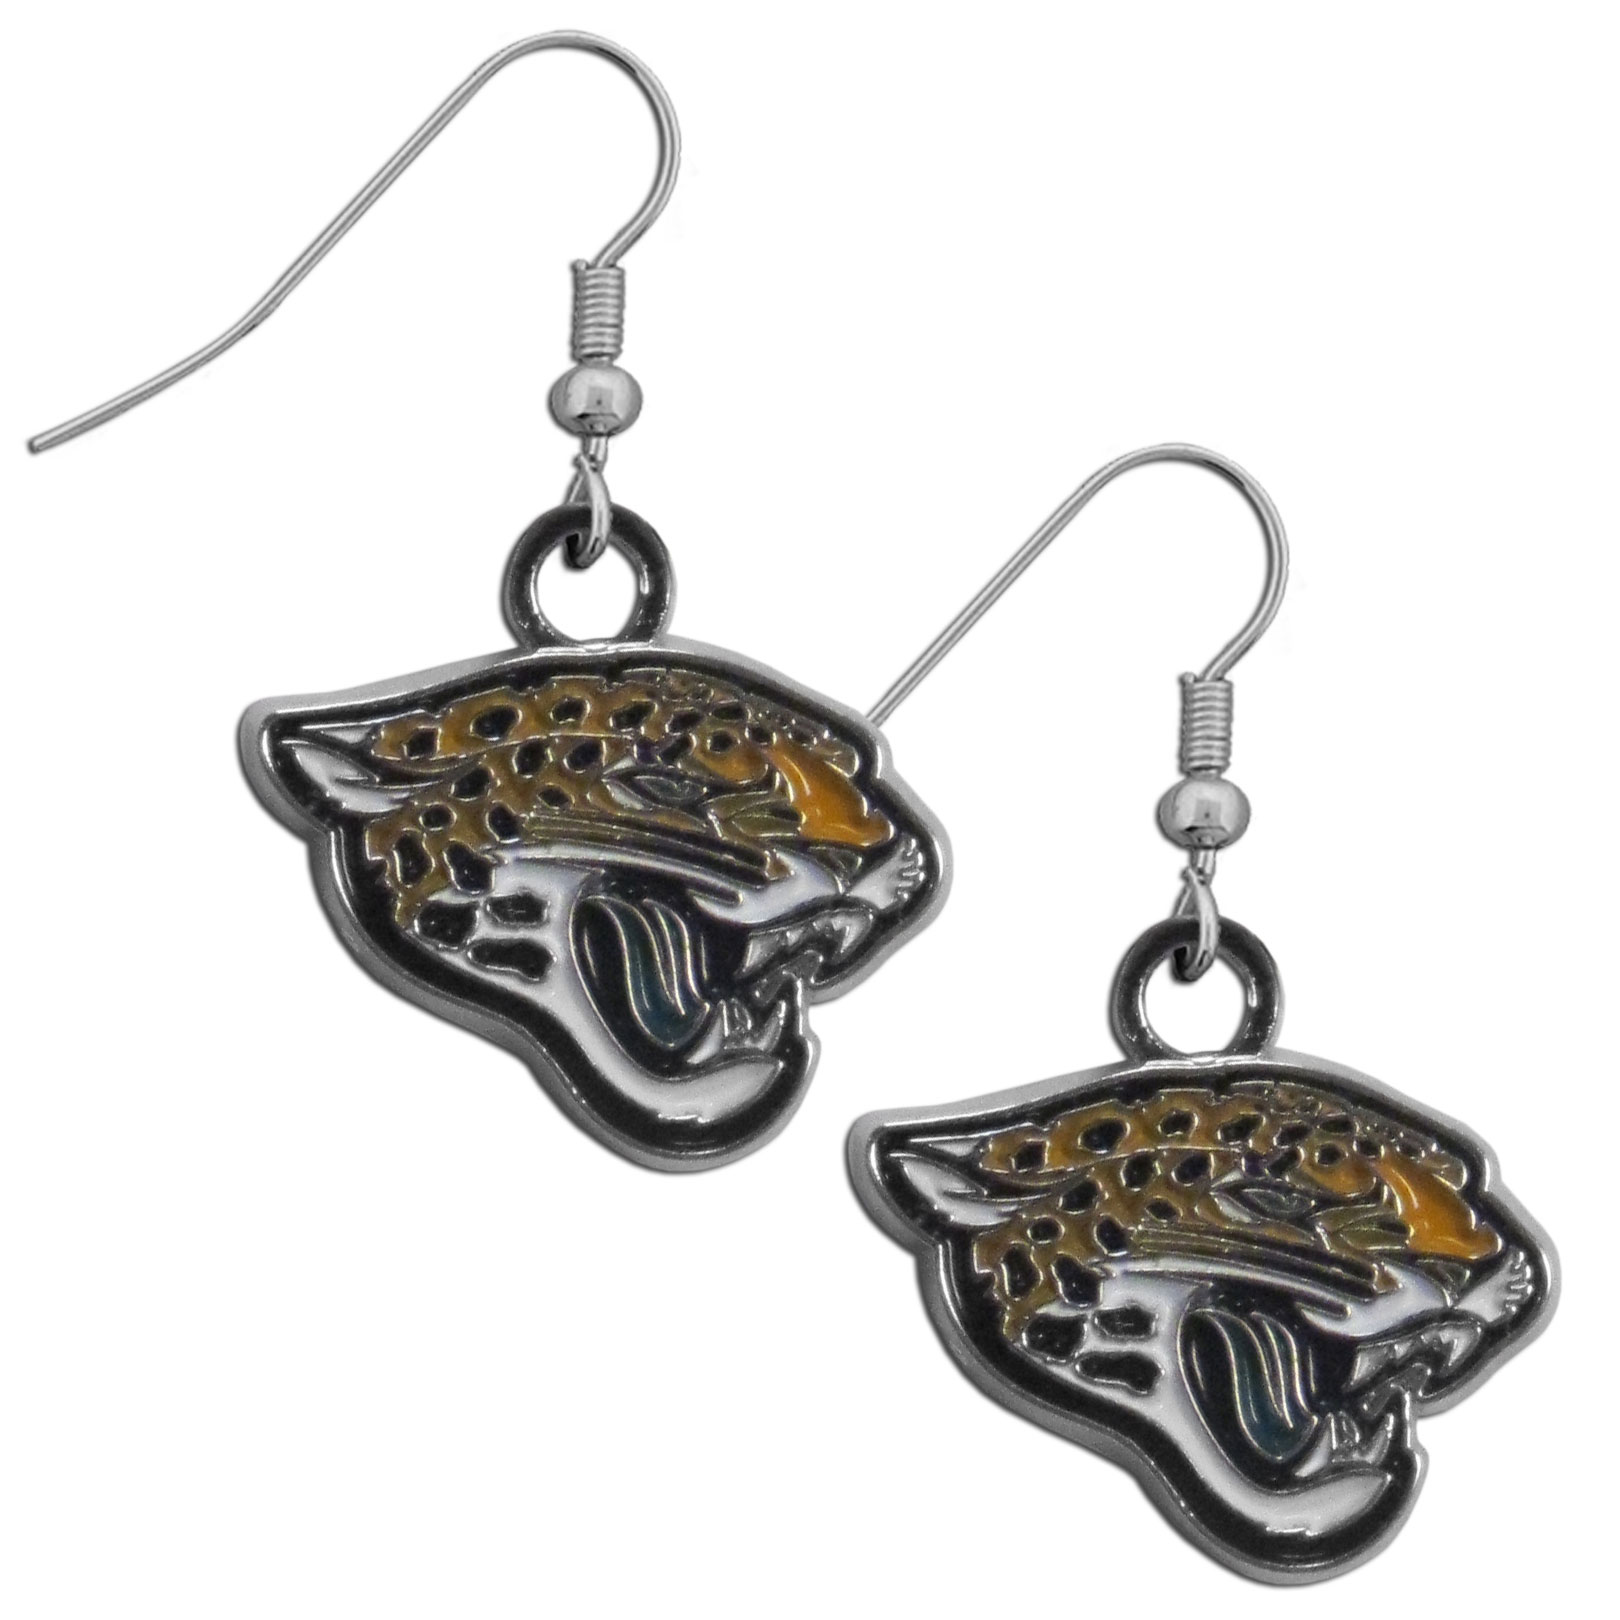 Jacksonville Jaguars Chrome Dangle Earrings - Officially licensed NFL Jacksonville Jaguars dangle earrings have fully cast Jacksonville Jaguars charms with exceptional detail and a hand enameled finish. The Jacksonville Jaguars  earrings have a high polish nickel free chrome finish and hypoallergenic fishhook posts.